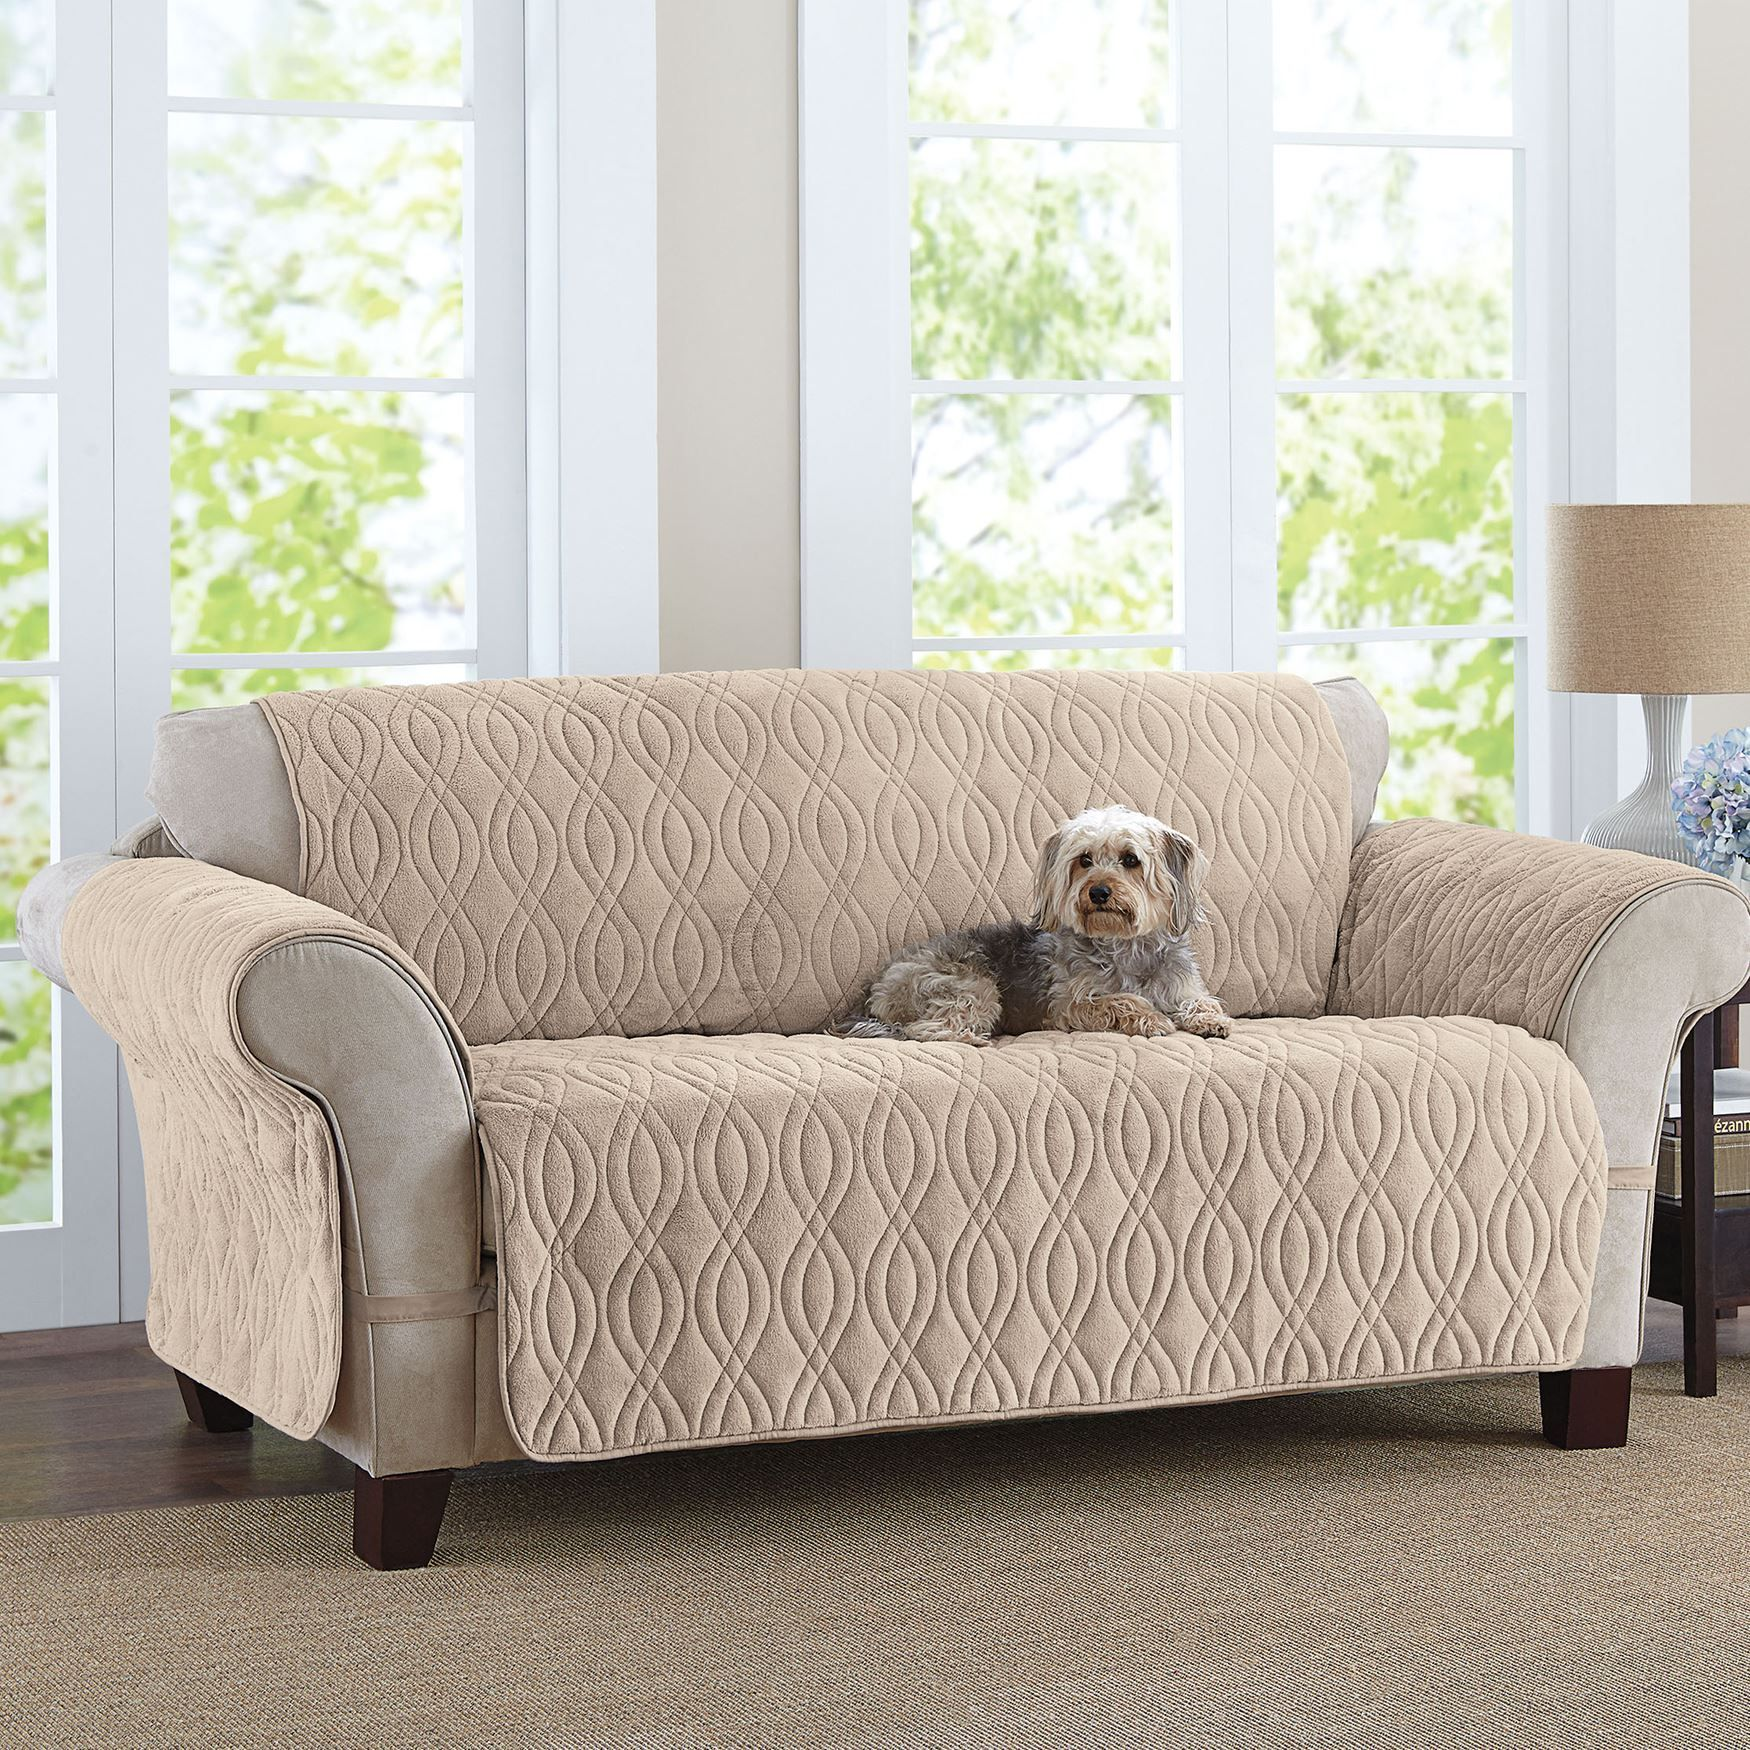 This deluxe quilted fleece like sofa cover is designed to wrap